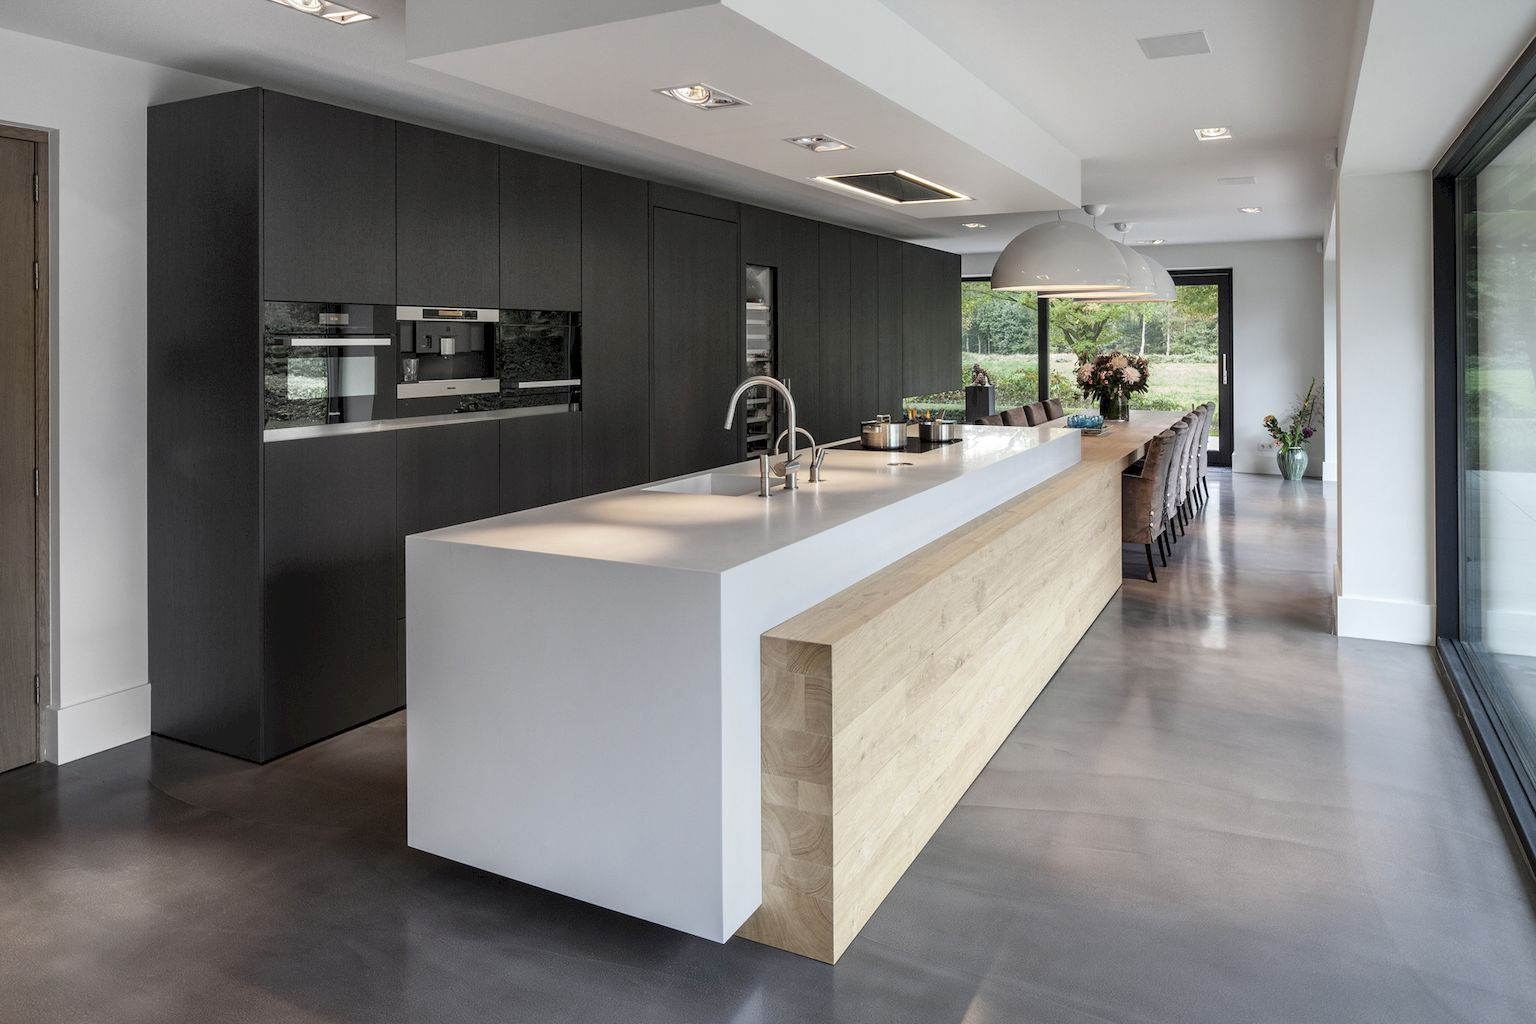 Adorable 60 Awesome Modern Kitchens Ideas Remodeling On A Budget ...